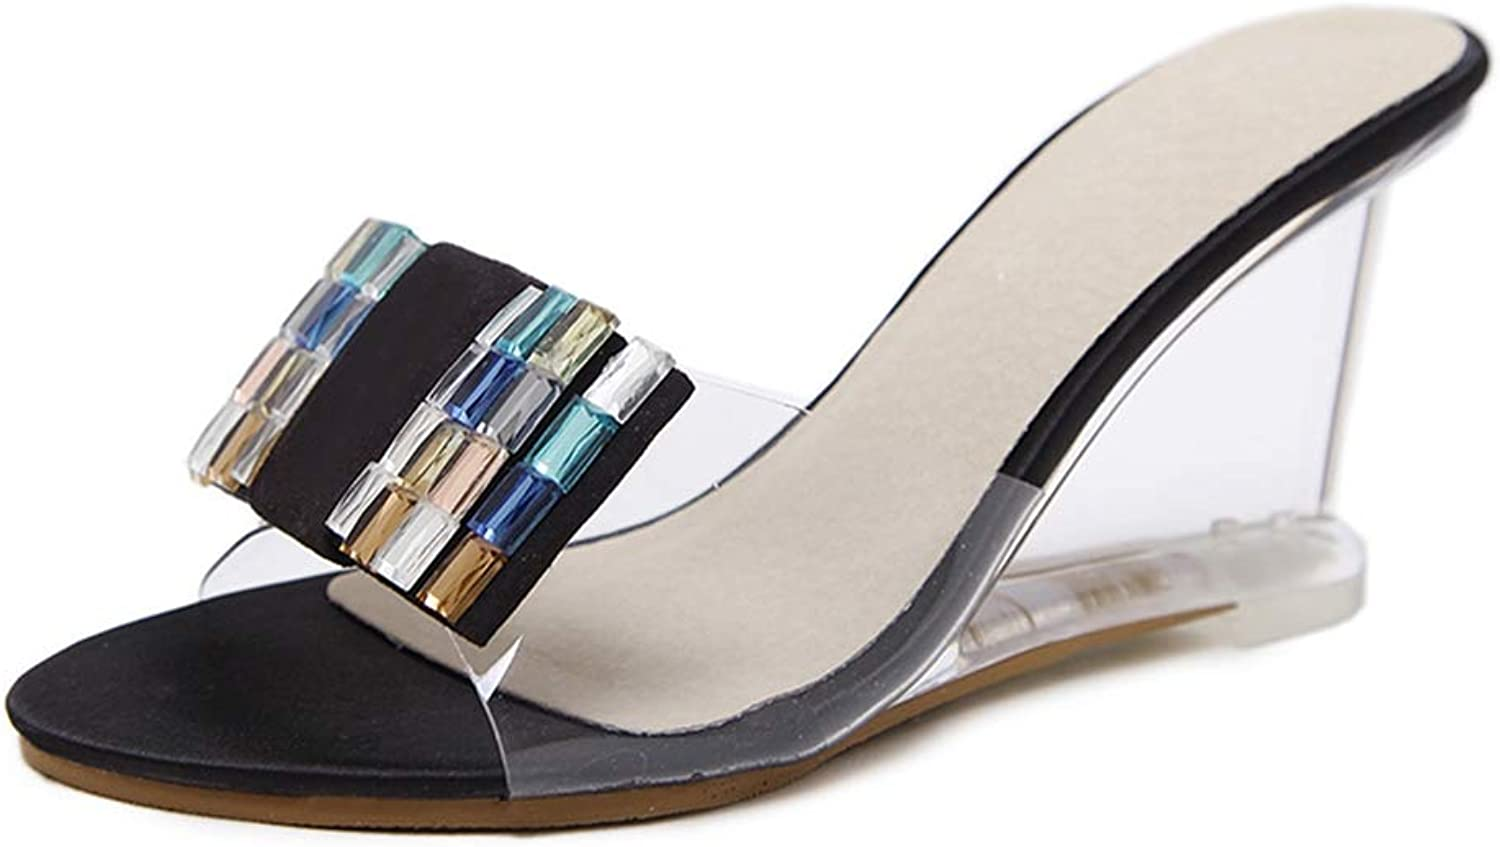 T-JULY Women High Heels Wedges Sandals shoes Female Summer Party Platform shoes Slippers